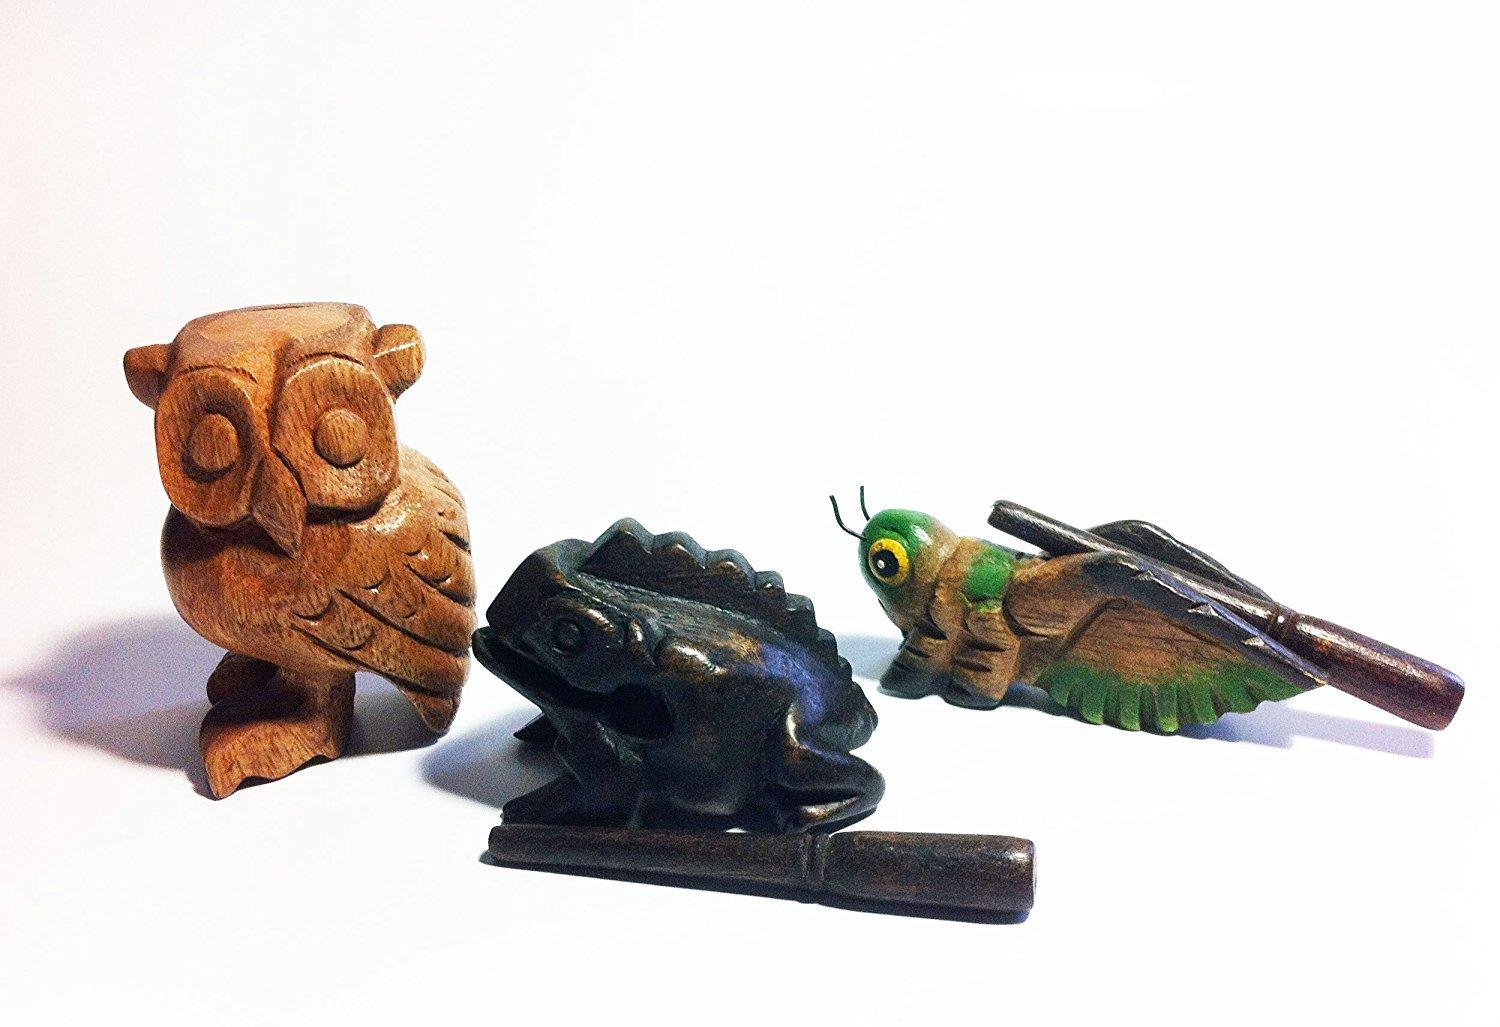 Wooden Percussion 3 Piece Set Frog, Cricket and Owl, 3 Inches by WADSUWAN SHOP